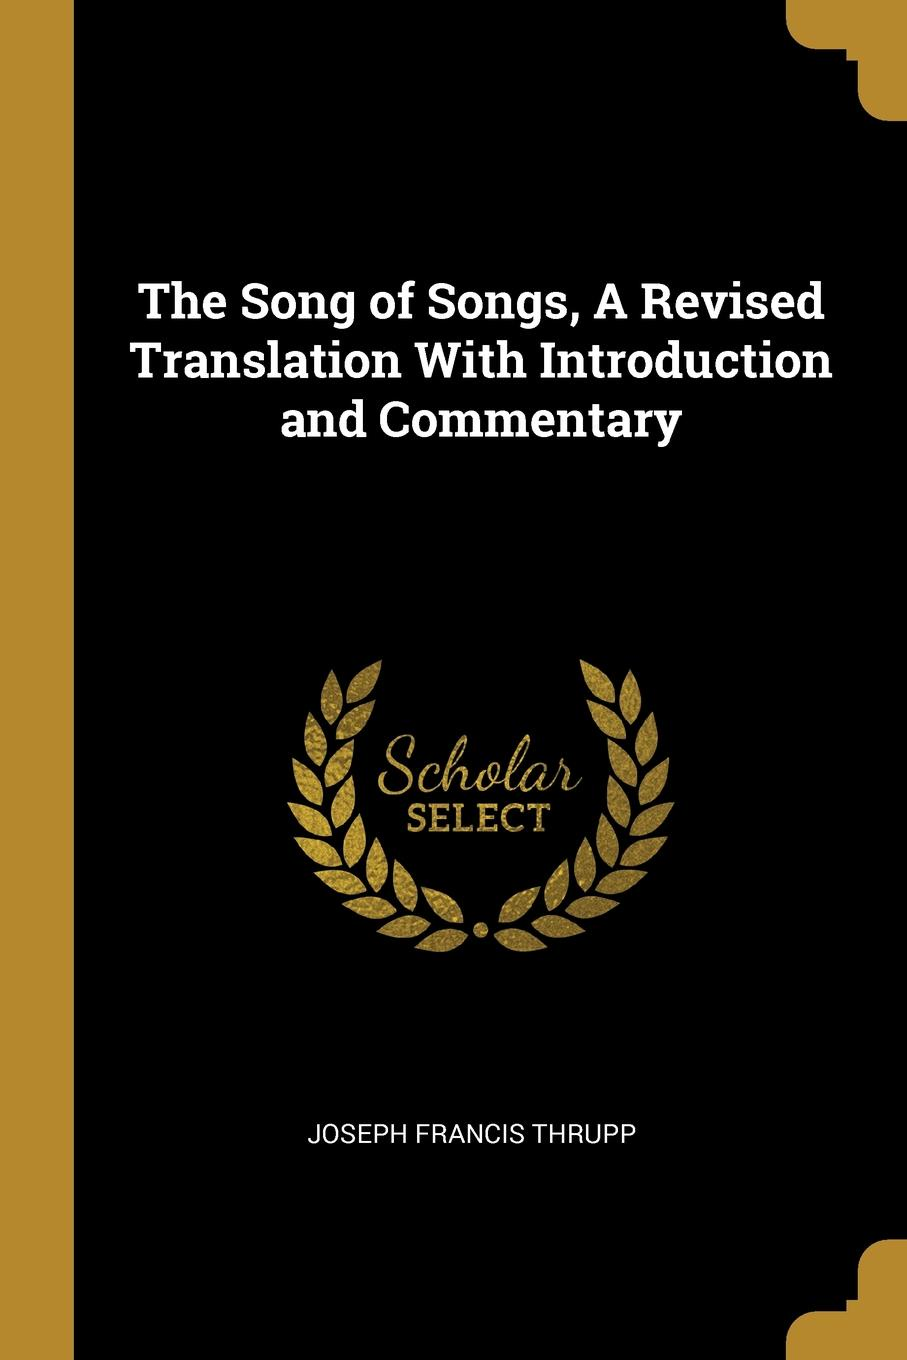 The Song of Songs, A Revised Translation With Introduction and Commentary